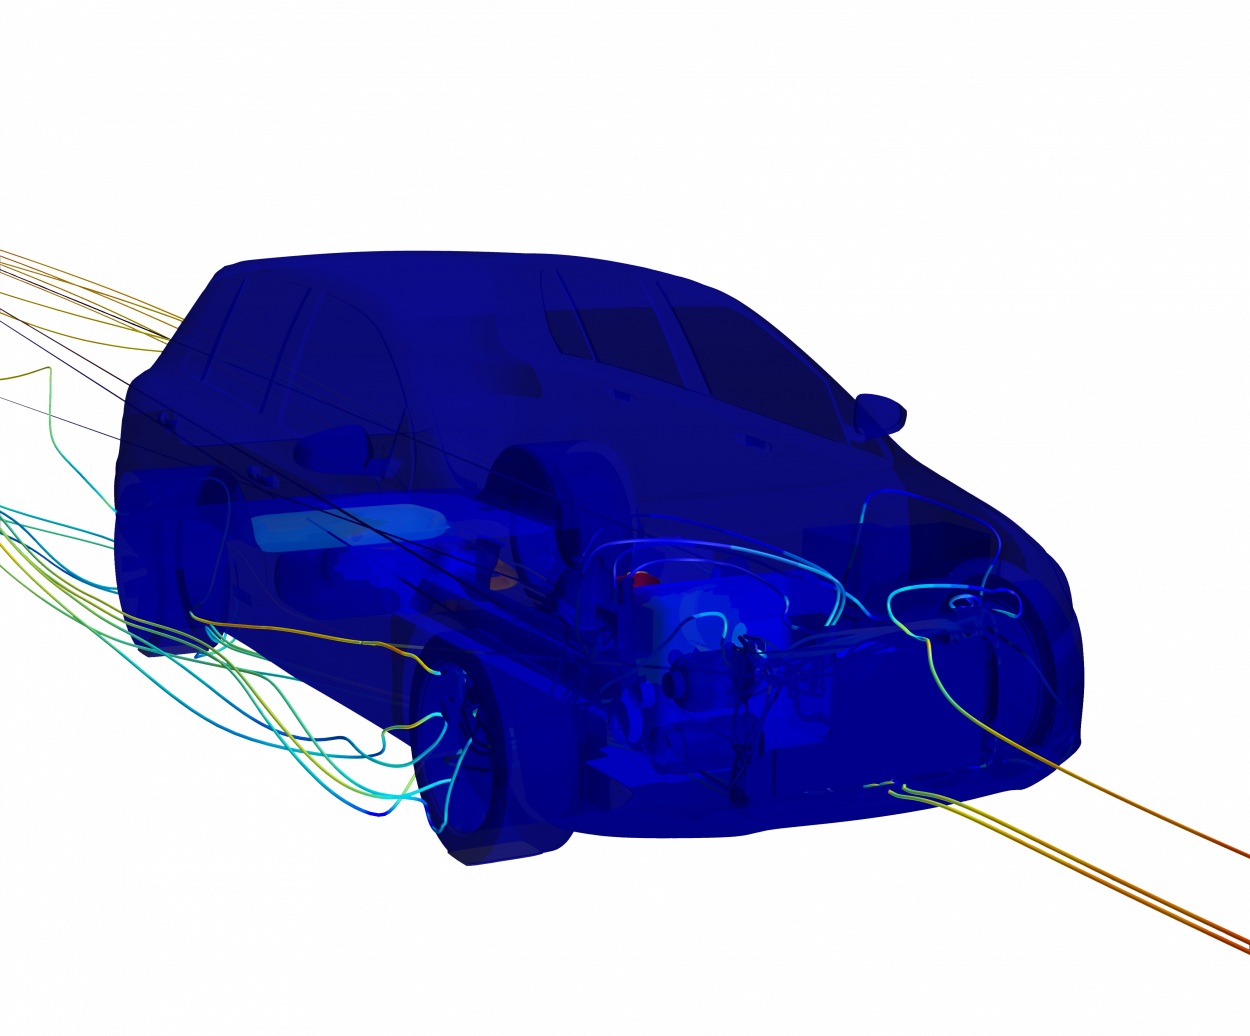 thermal and cfd model of volkswagon golf with streamlines through grill and underbody